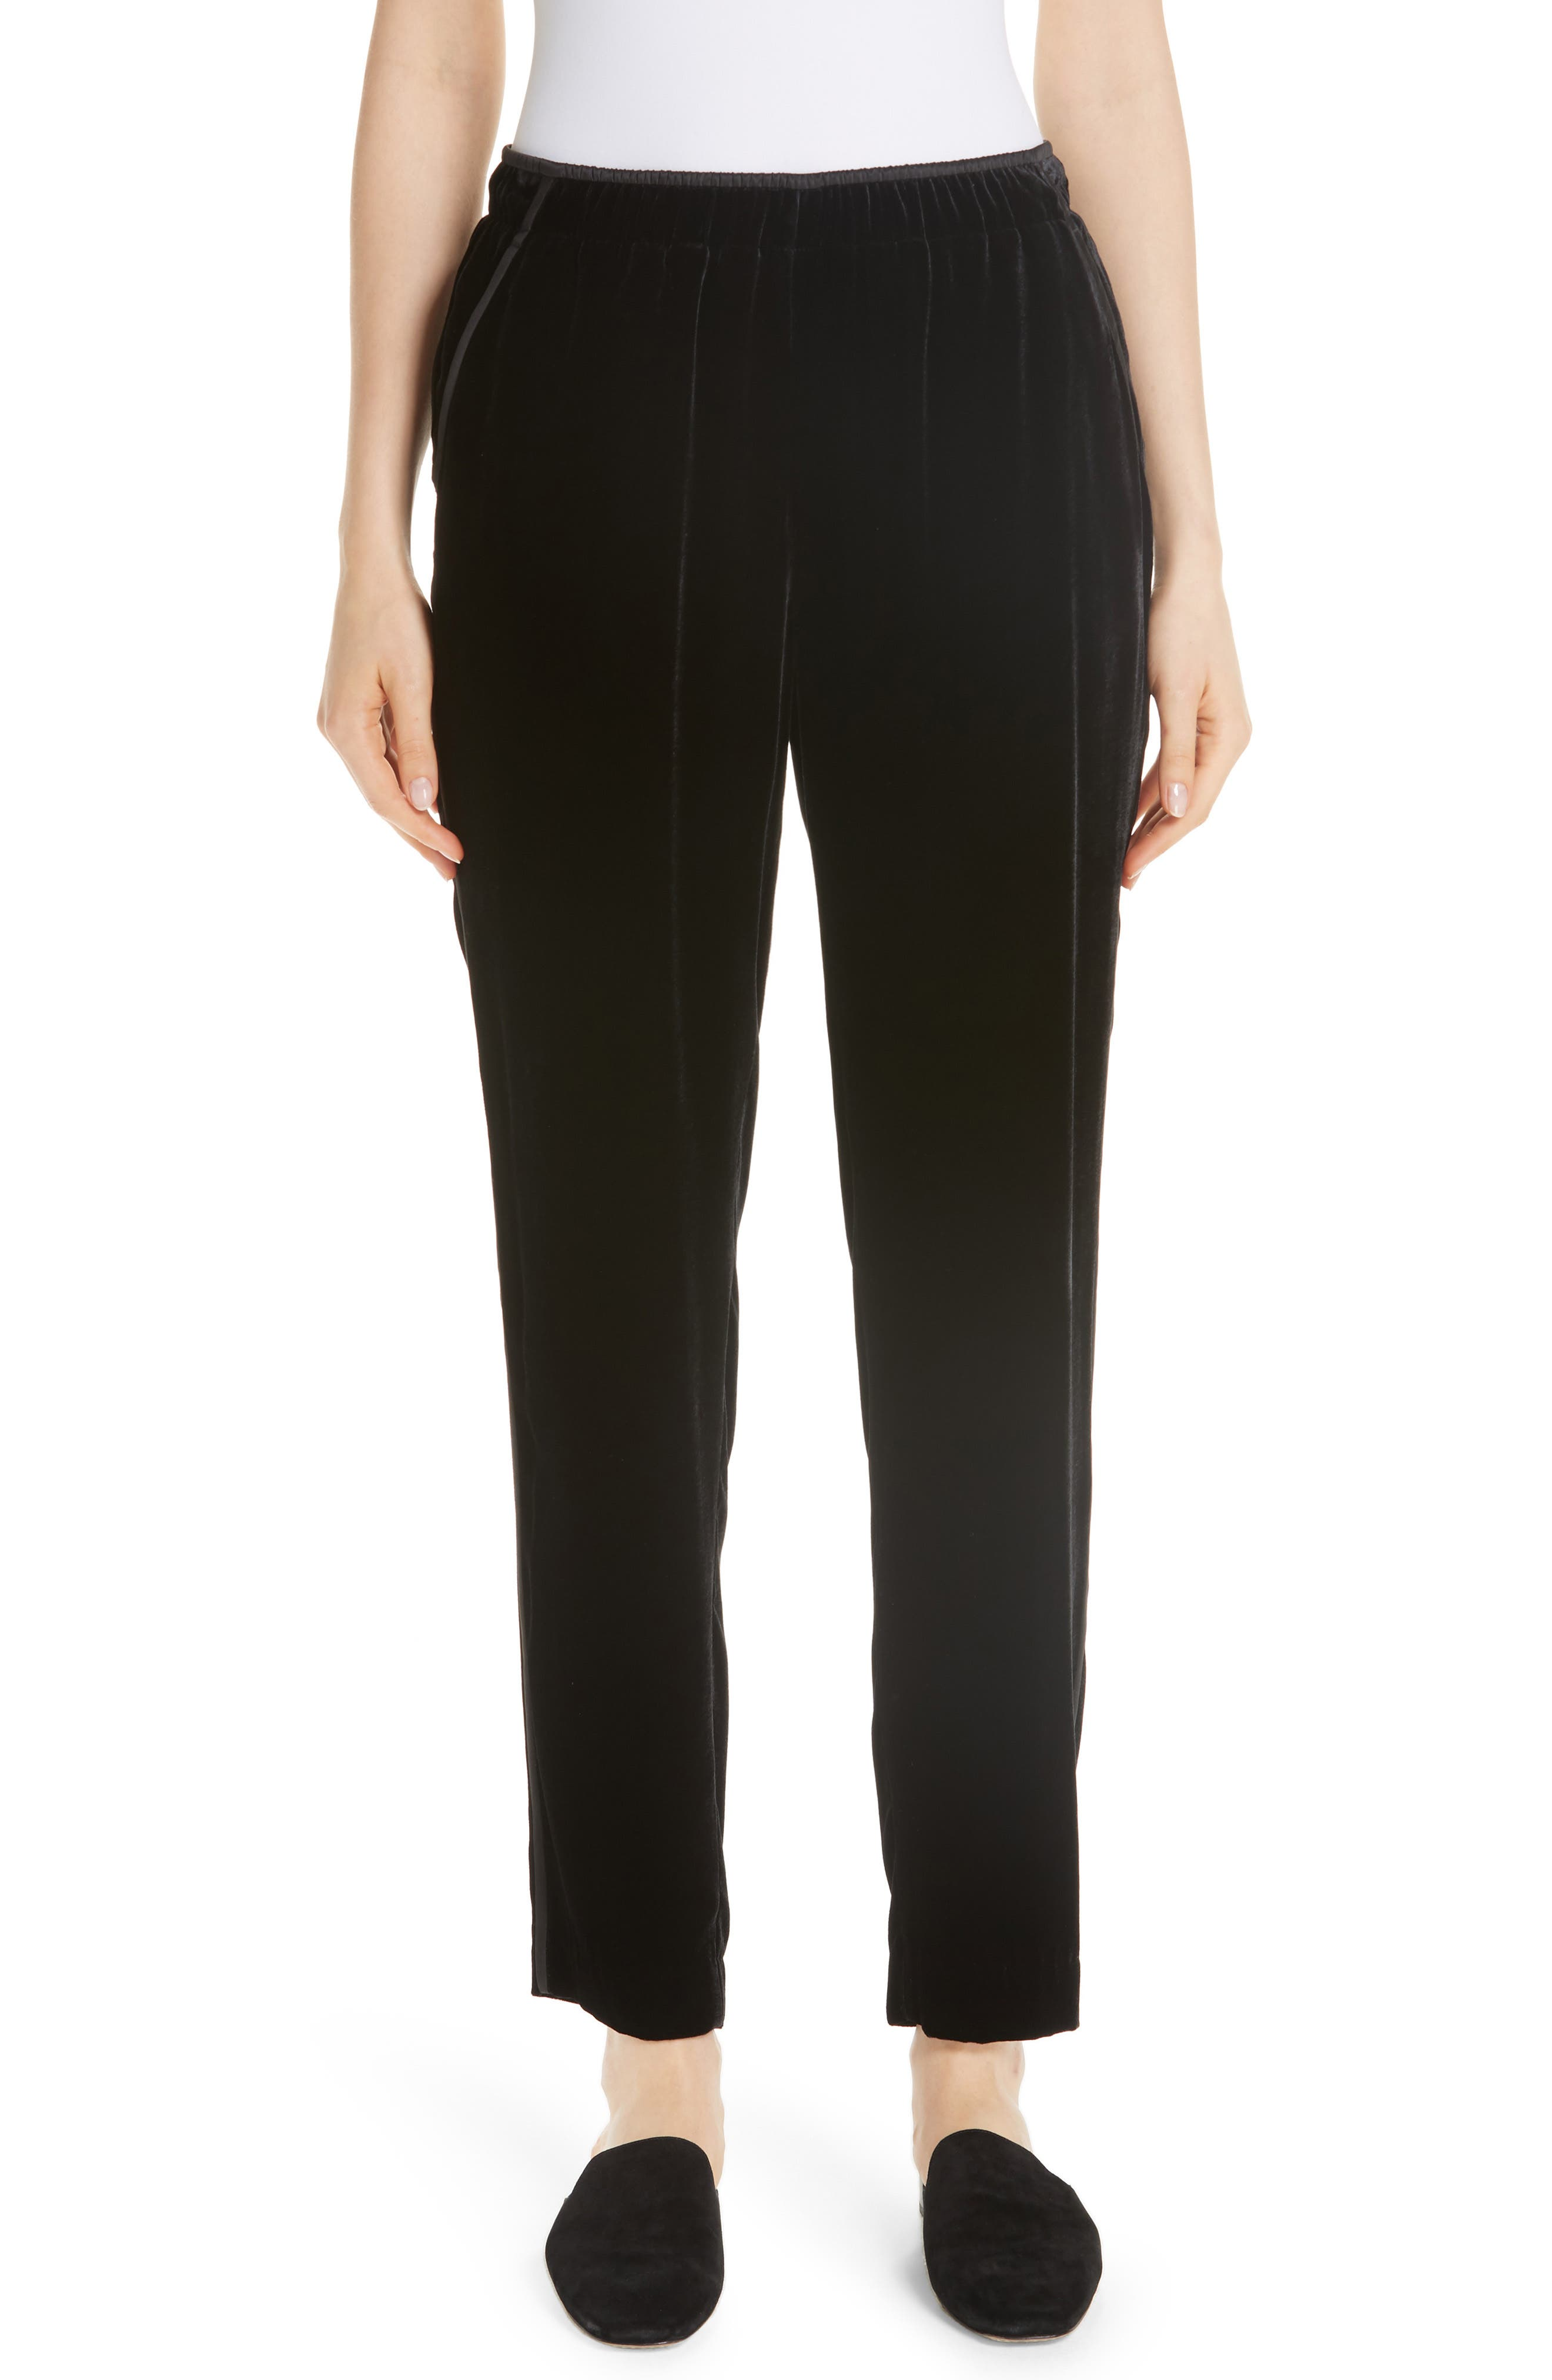 Velvet Track Pants With Piping in Black